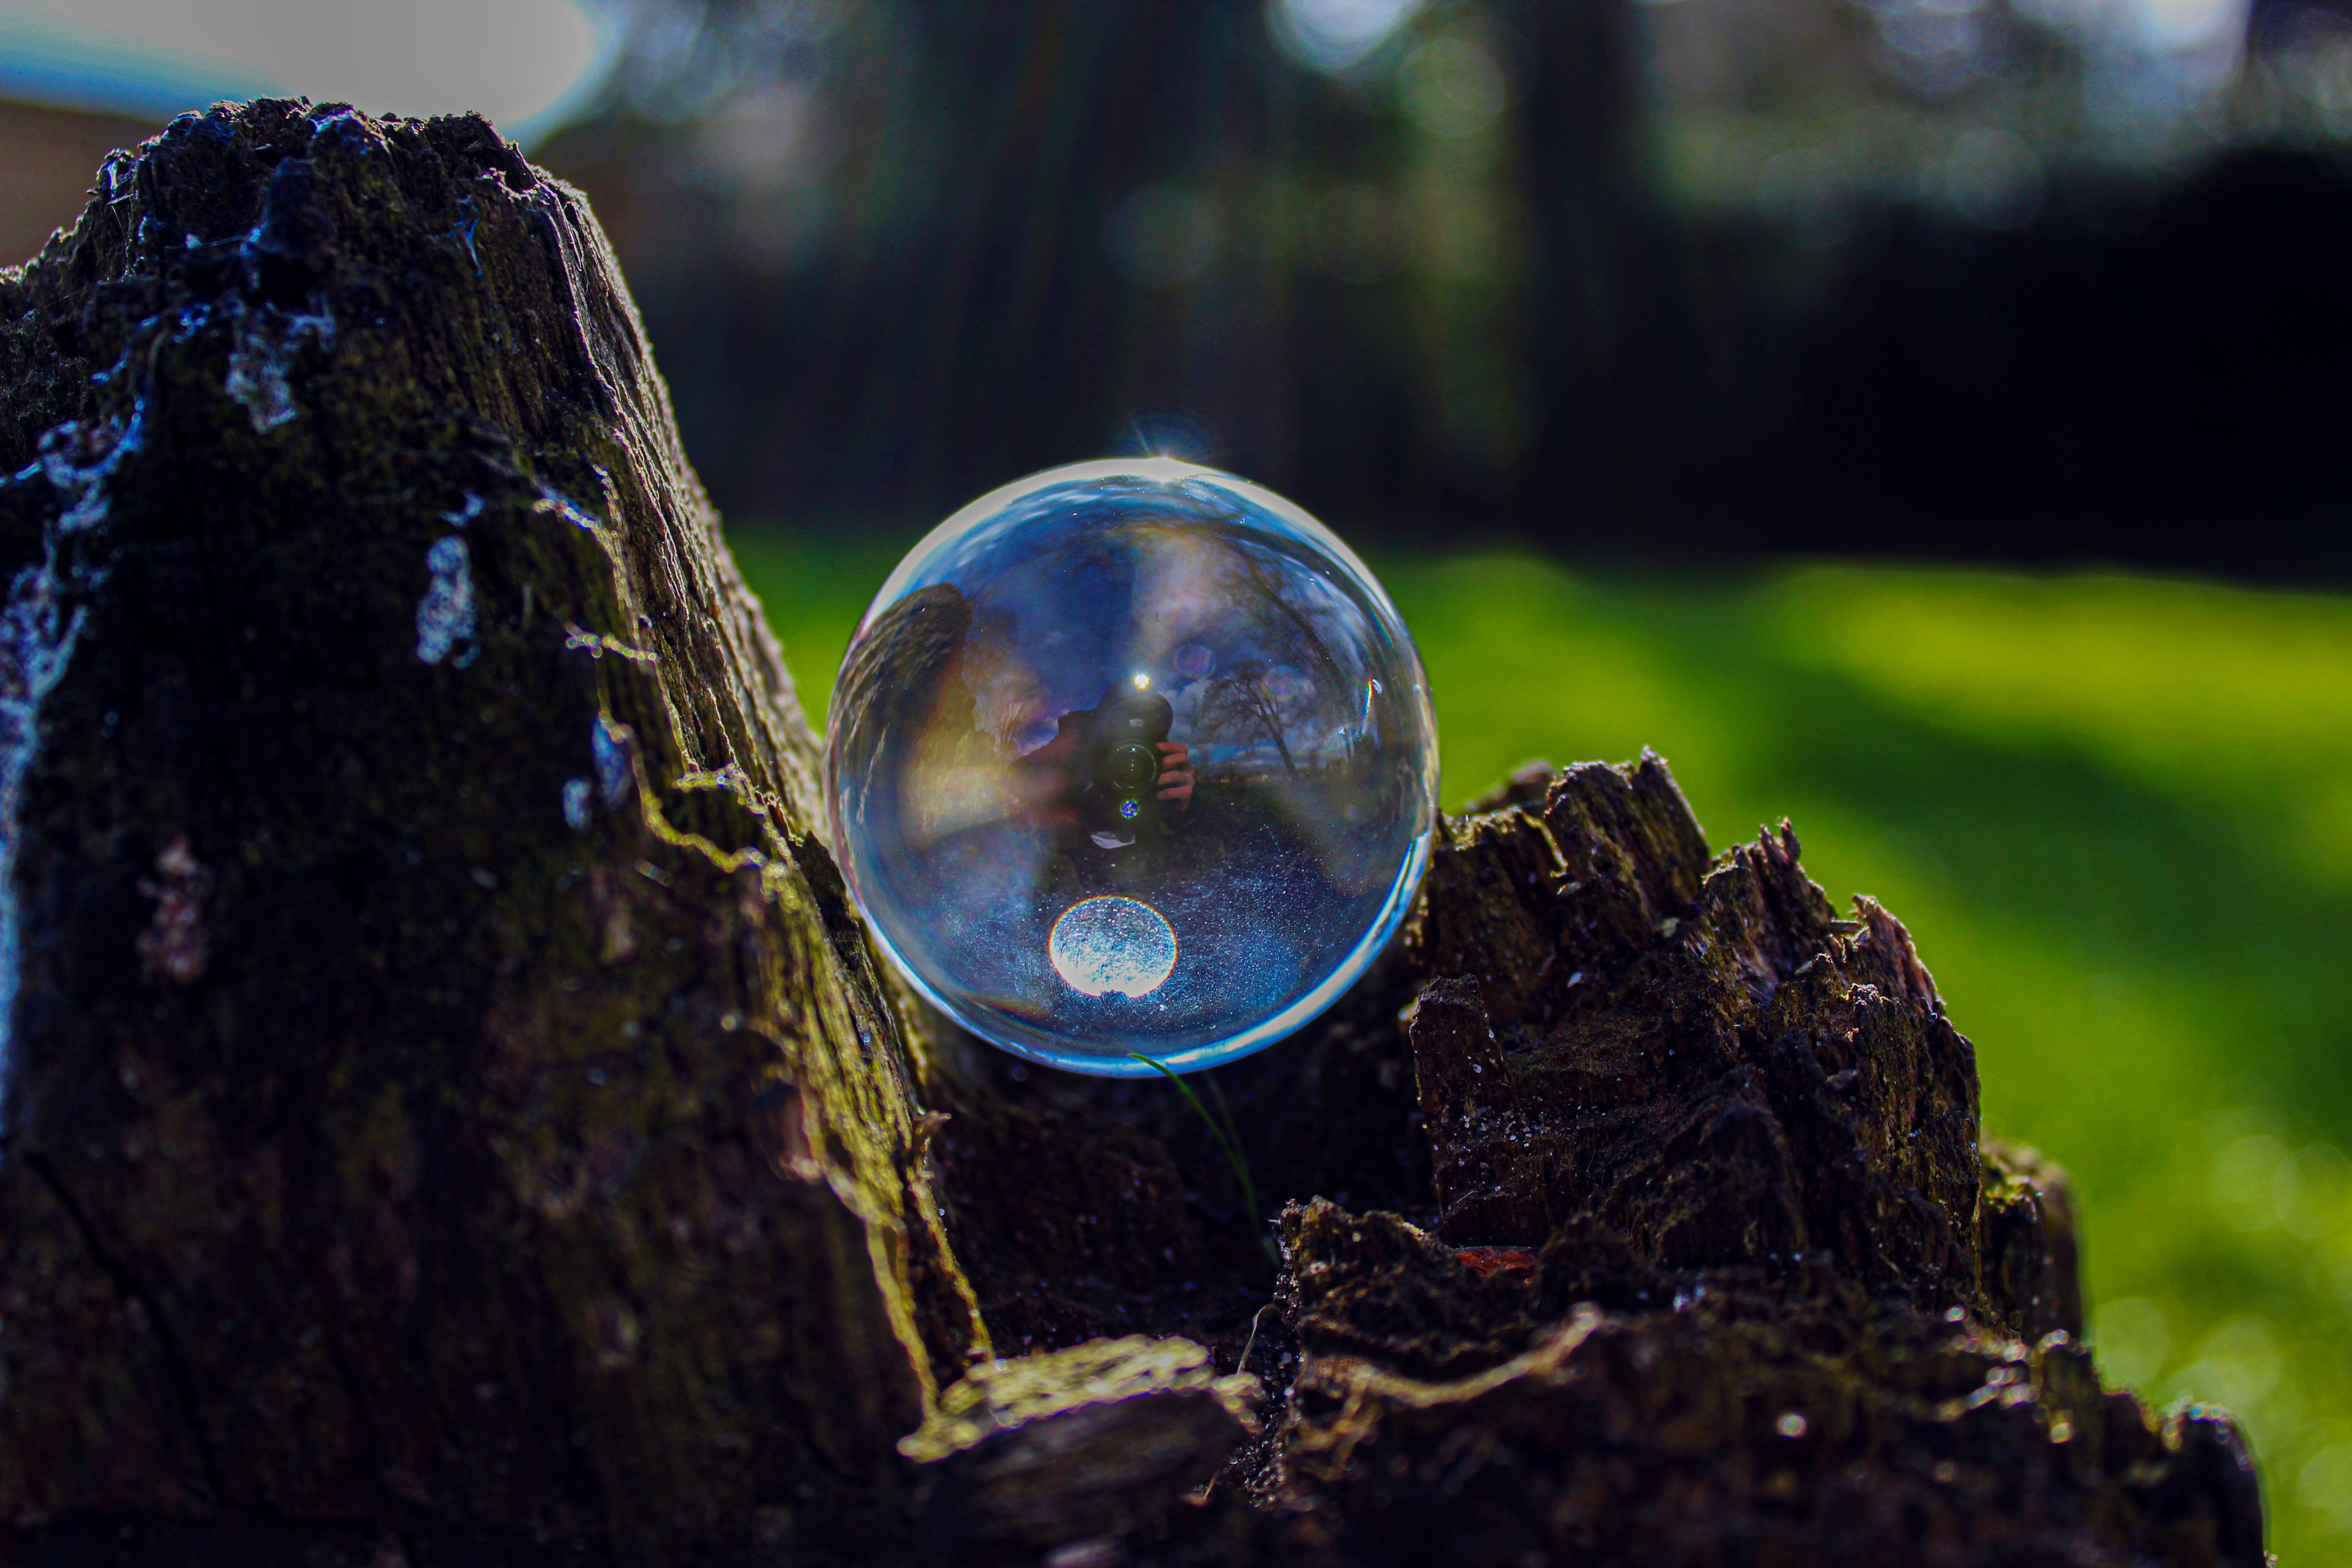 Had so much fun shooting through one of these. I recommend photographers buying this if you want to try new things  #photography #naturephotography #nature #reflection #crystalball #treestump